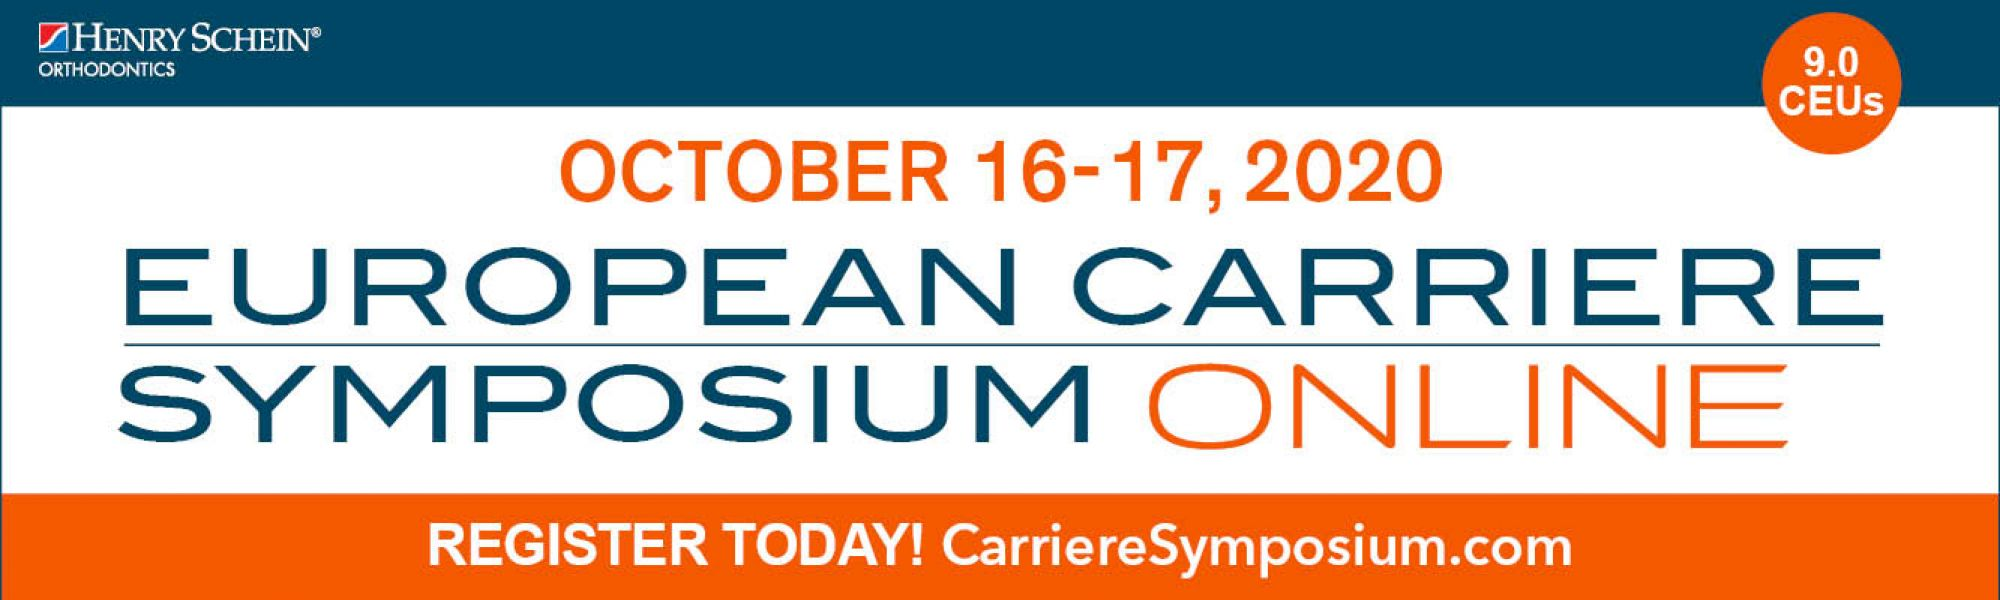 EUROPEAN CARRIERE SYMPOSIUM